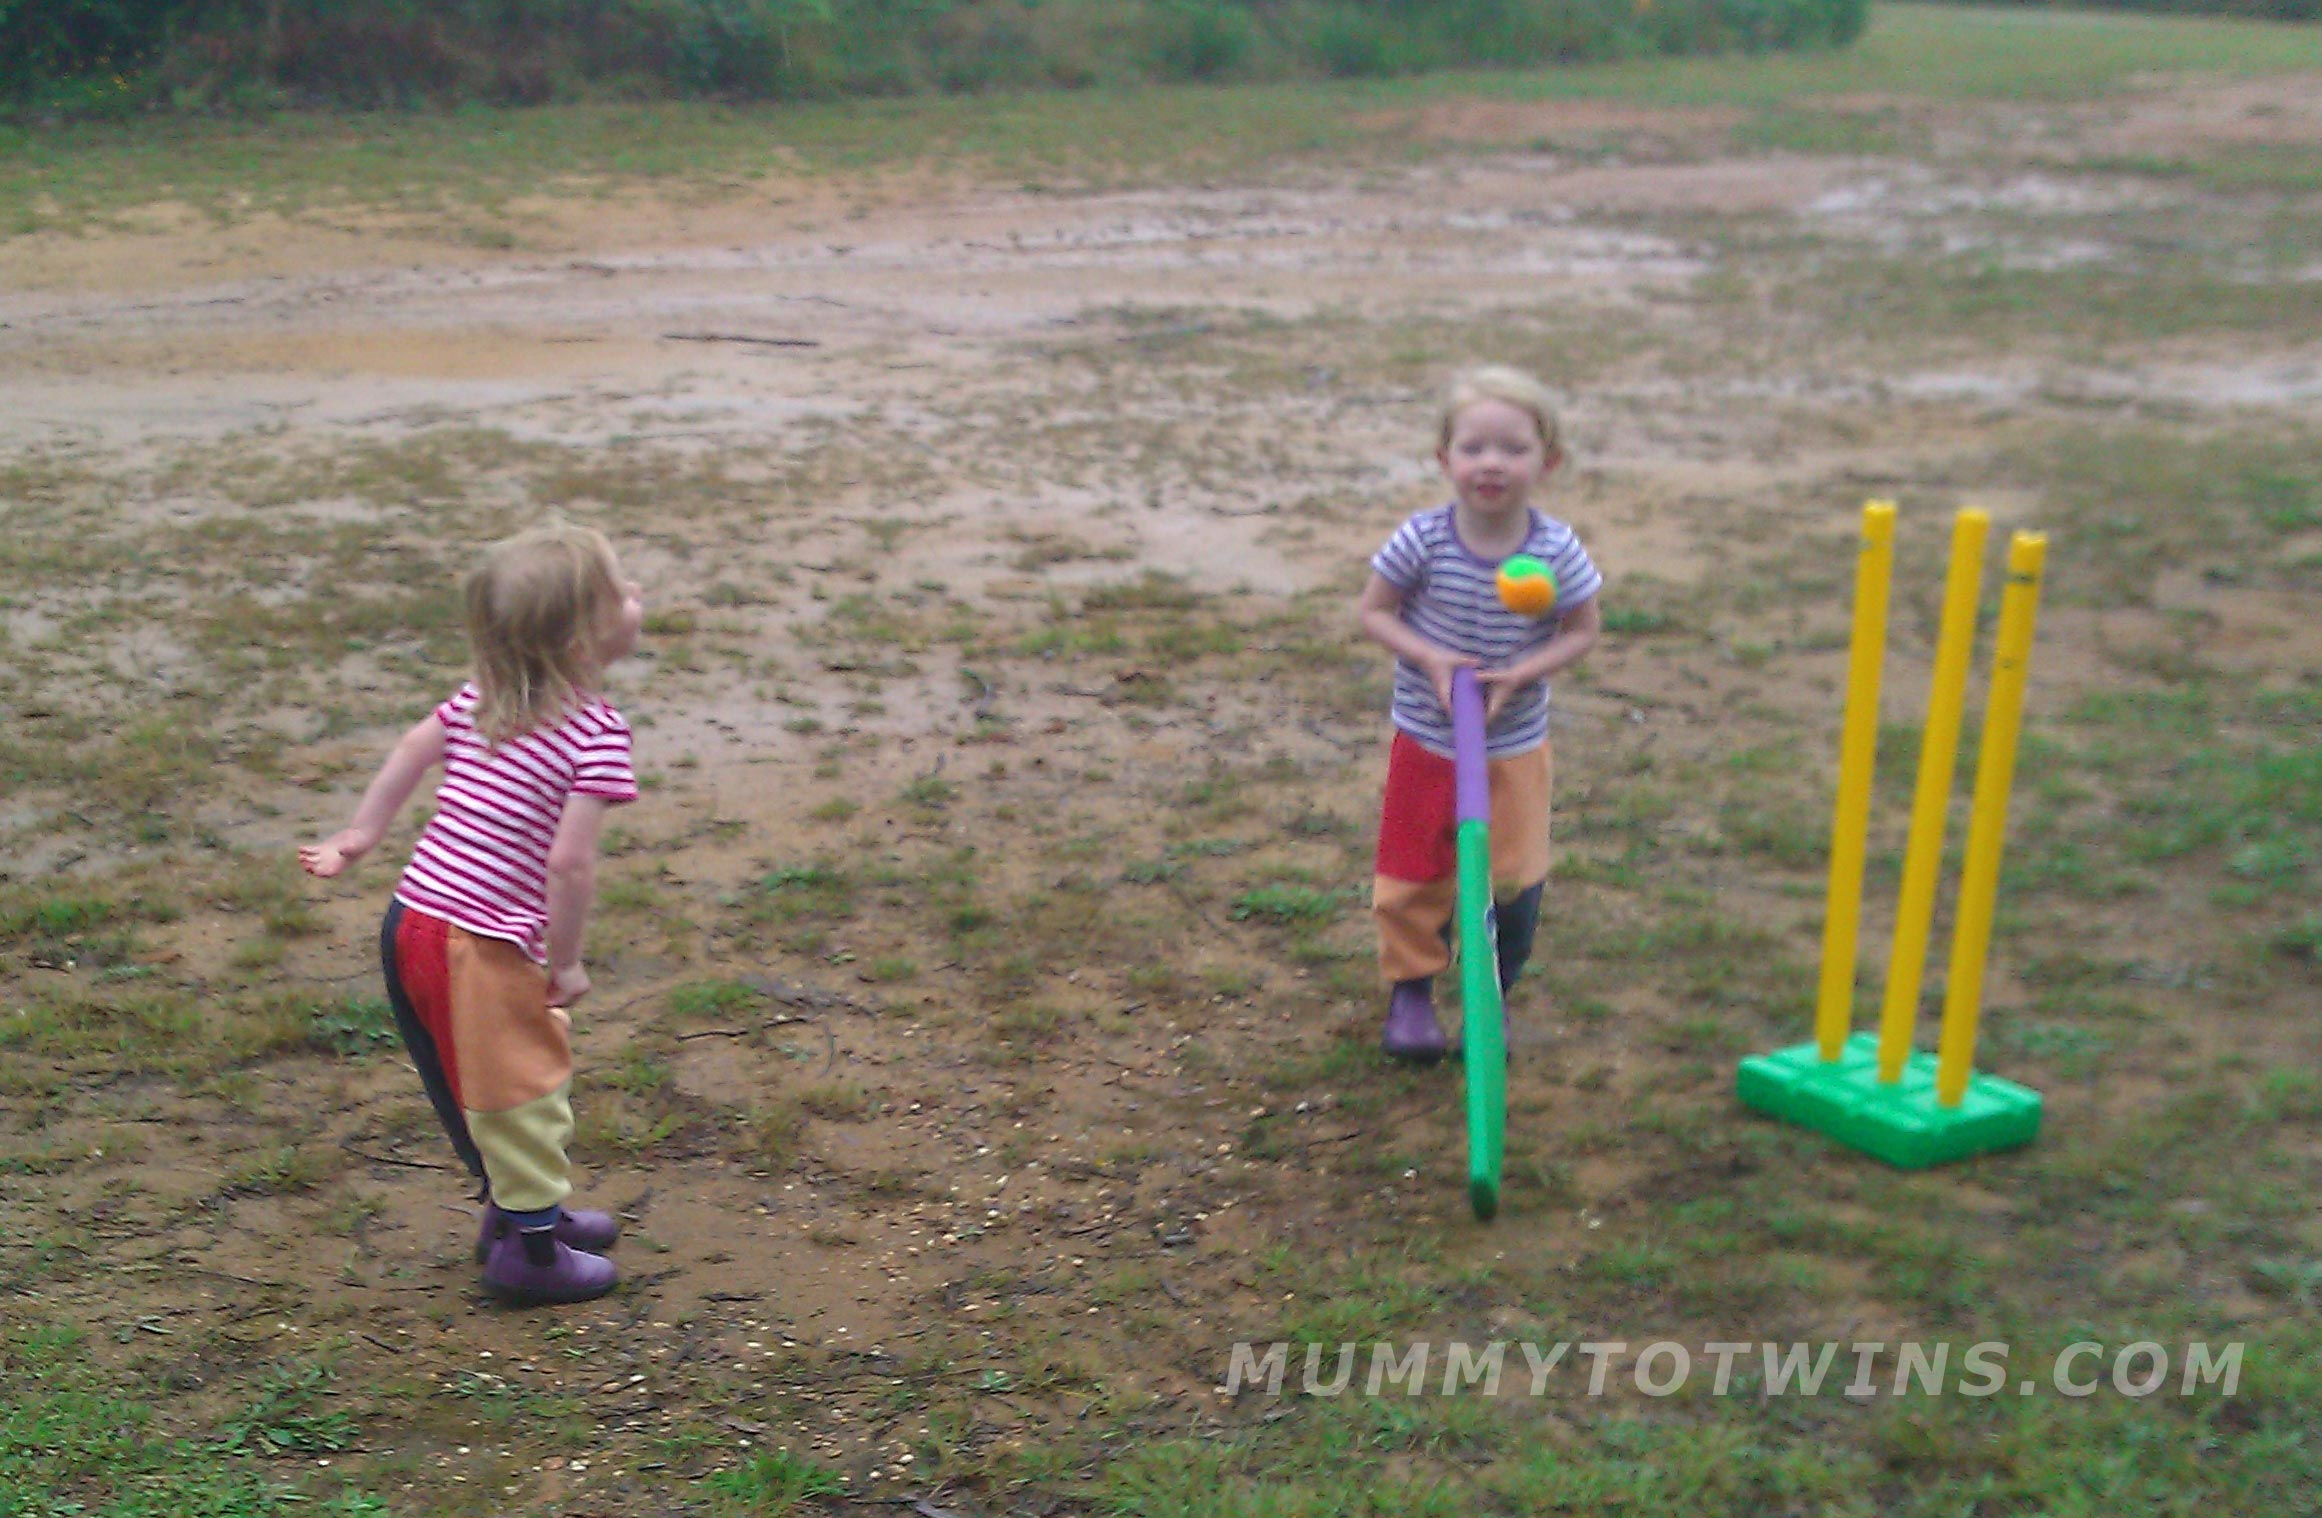 Julia and Lillian playing cricket